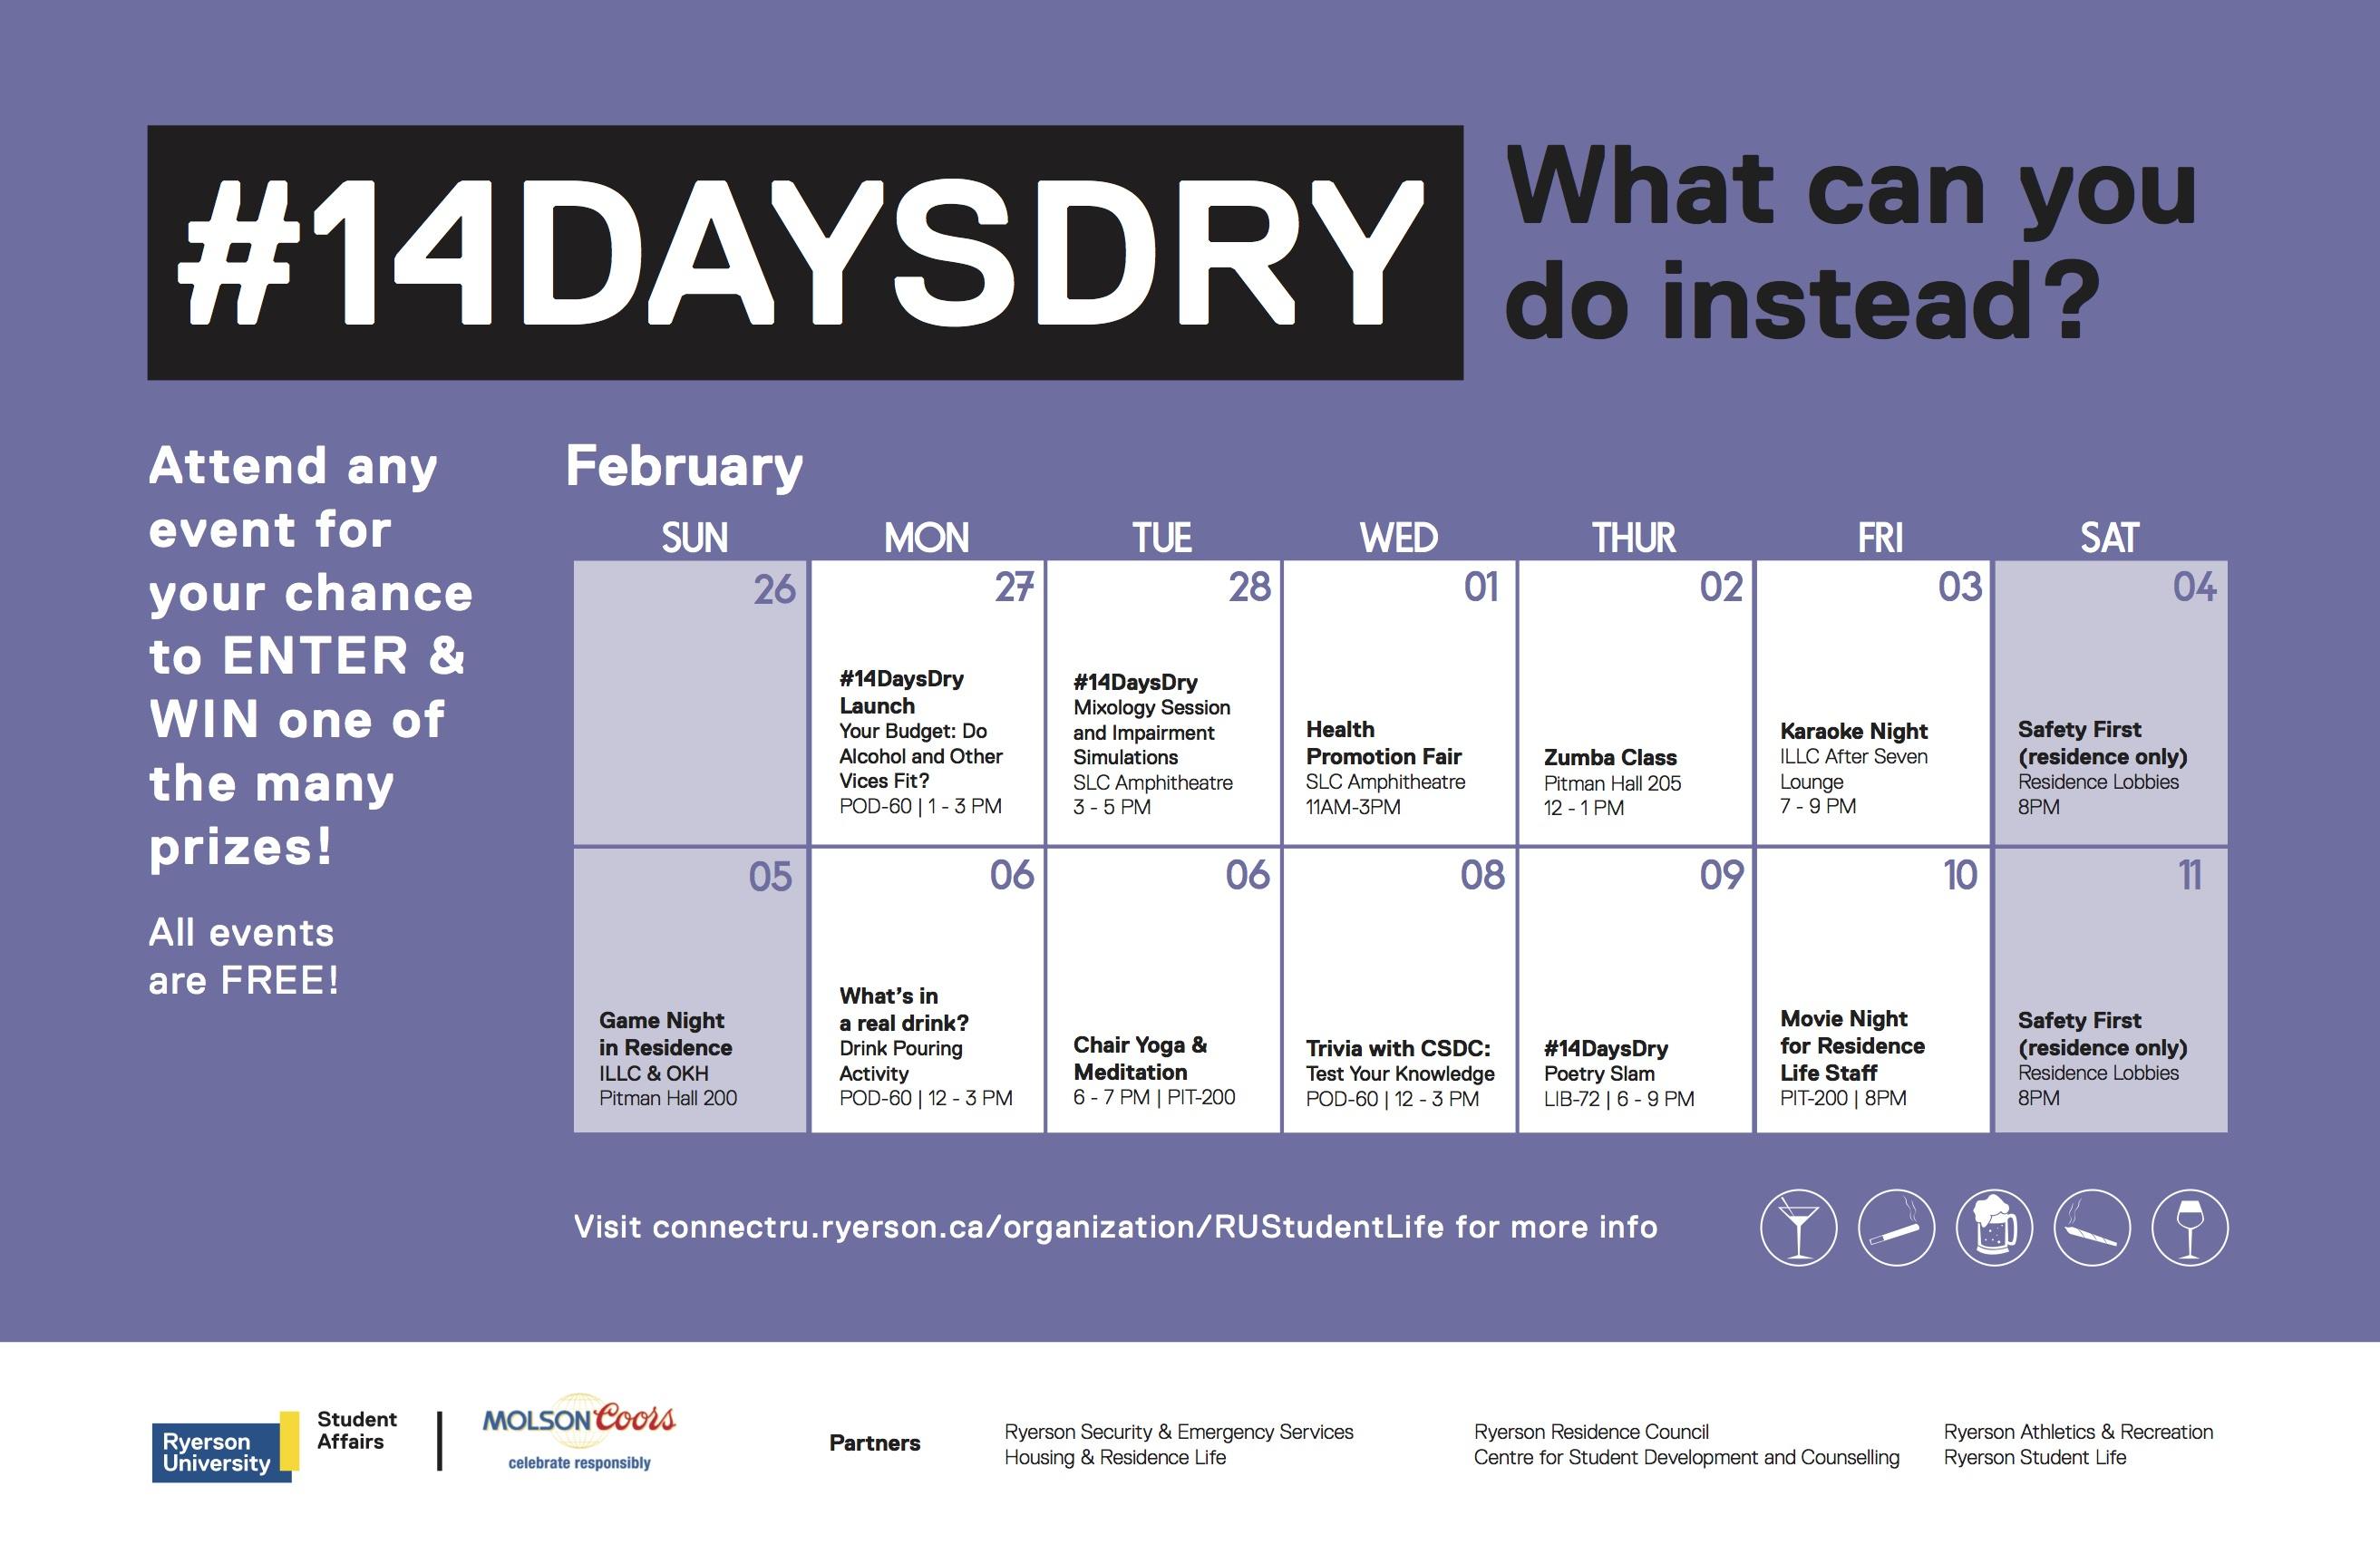 #14DaysDry campaign poster featuring event information